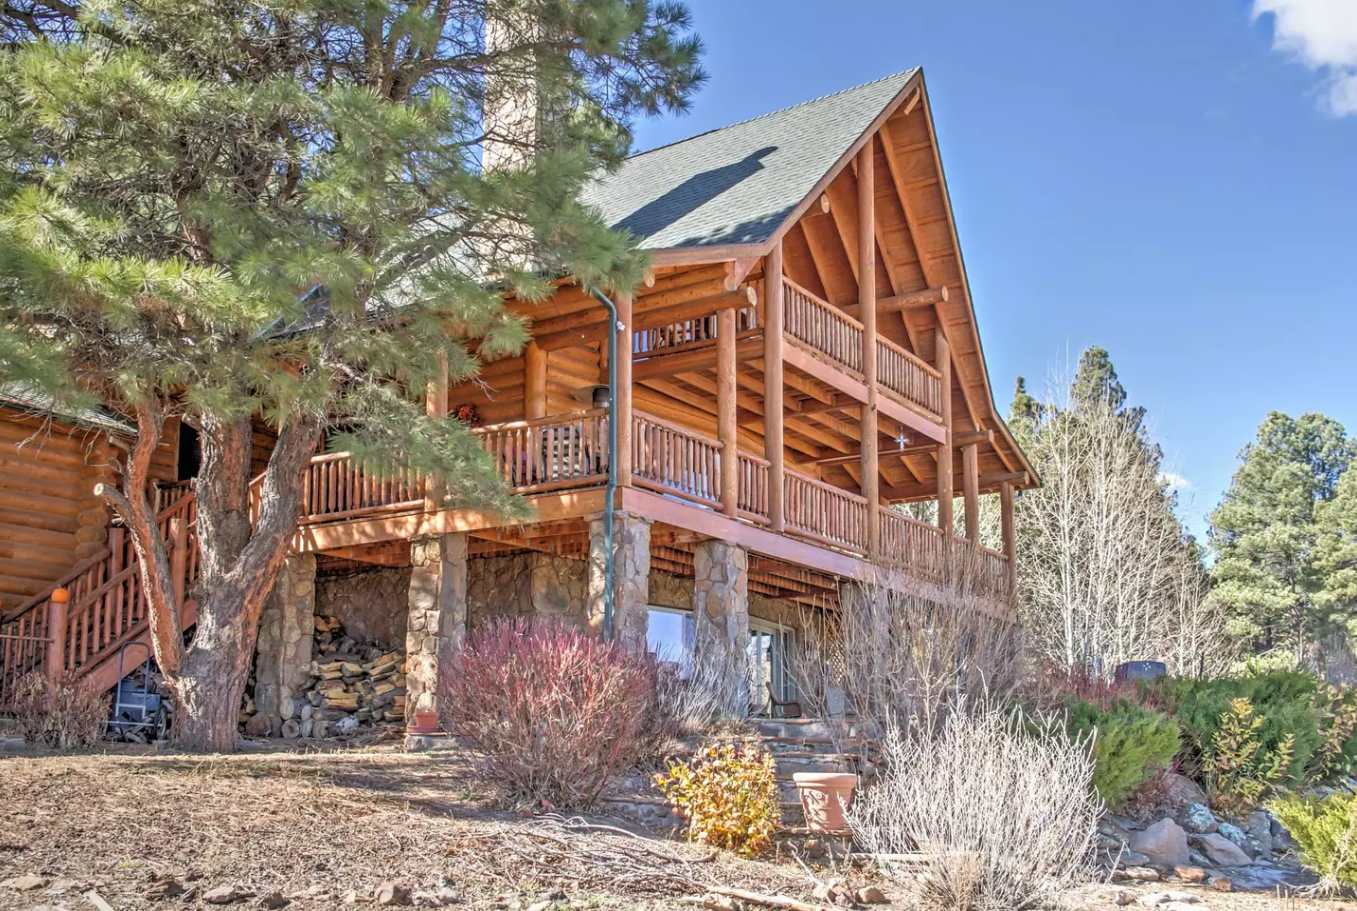 Exterior, Cabin Building Type, A-Frame RoofLine, Shingles Roof Material, and Wood Siding Material Grant yourself the ultimate escape to the Grand Canyon State with this stunning 3-bedroom, 3.5-bathroom Flagstaff vacation rental cabin, which sleeps 10 guests comfortably. Chock-full of amenities and situated in a private scenic landscape.  Photo 12 of 12 in 11 A-Frame Cabins For A-Grade Getaways